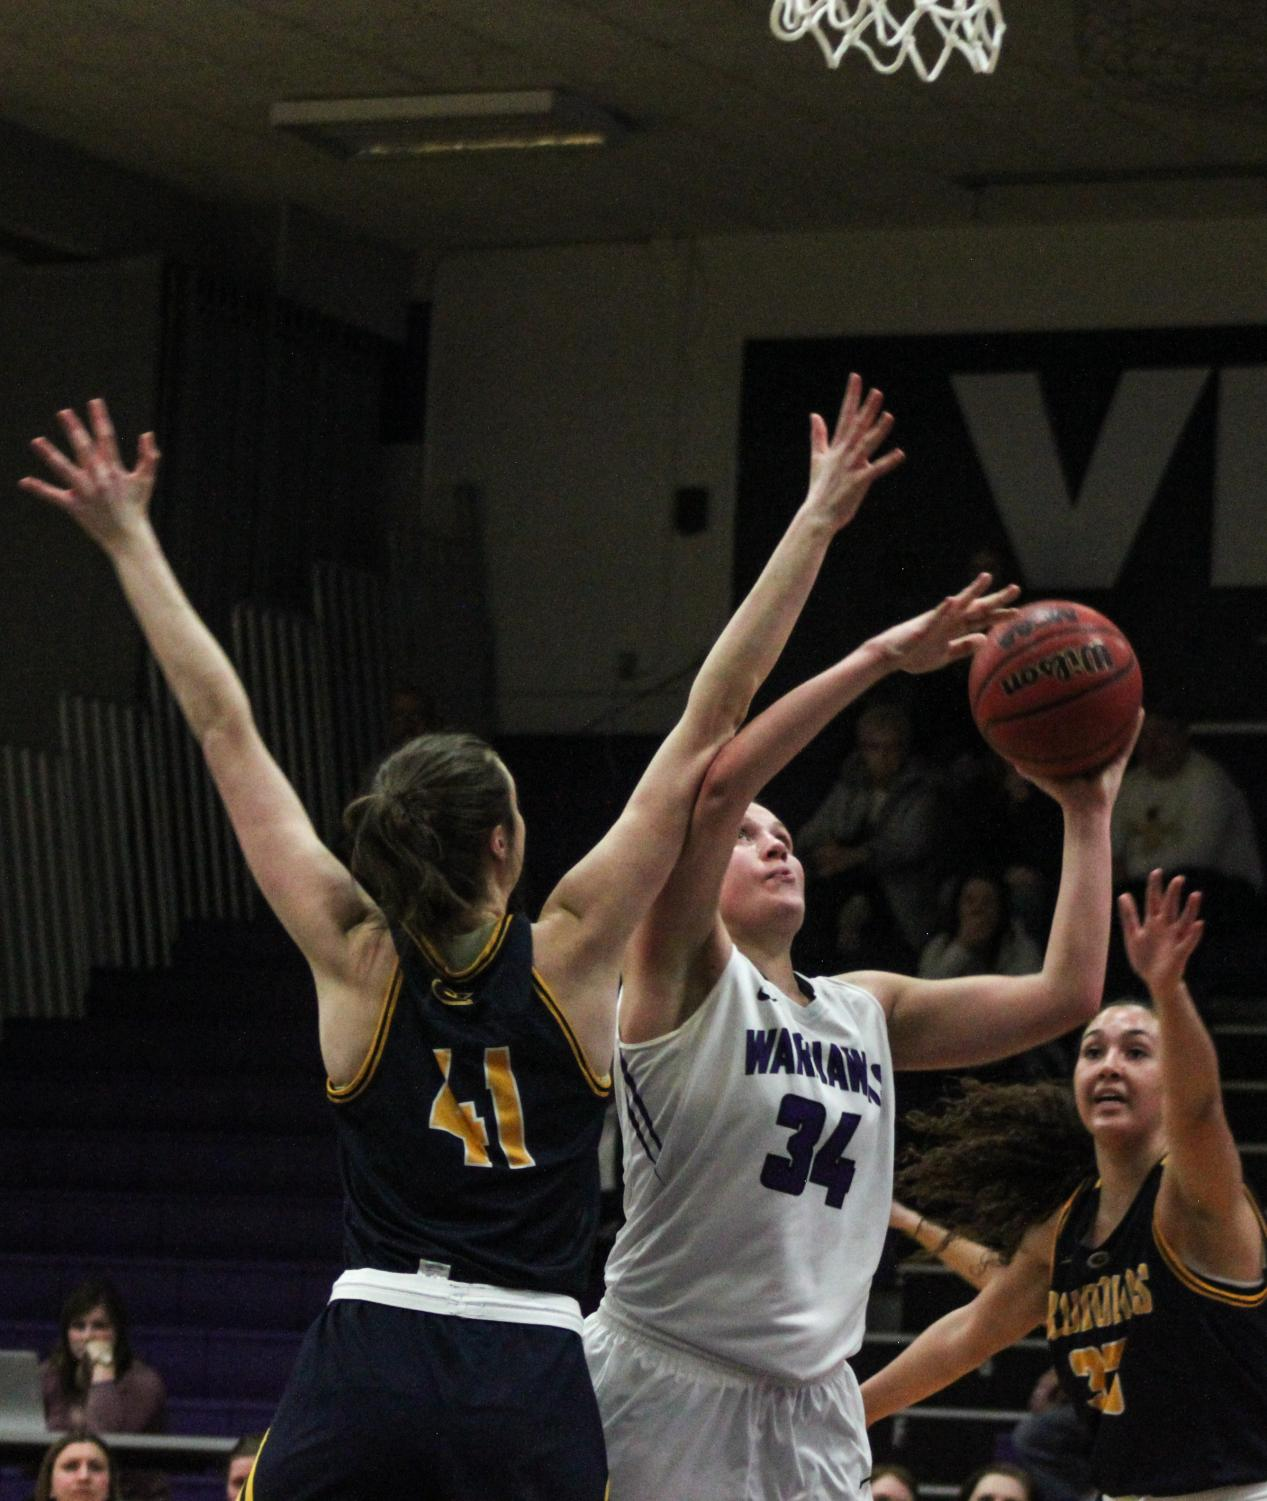 UW-Whitewater vs UW-Eau-Claire in the WIAC Women's ...